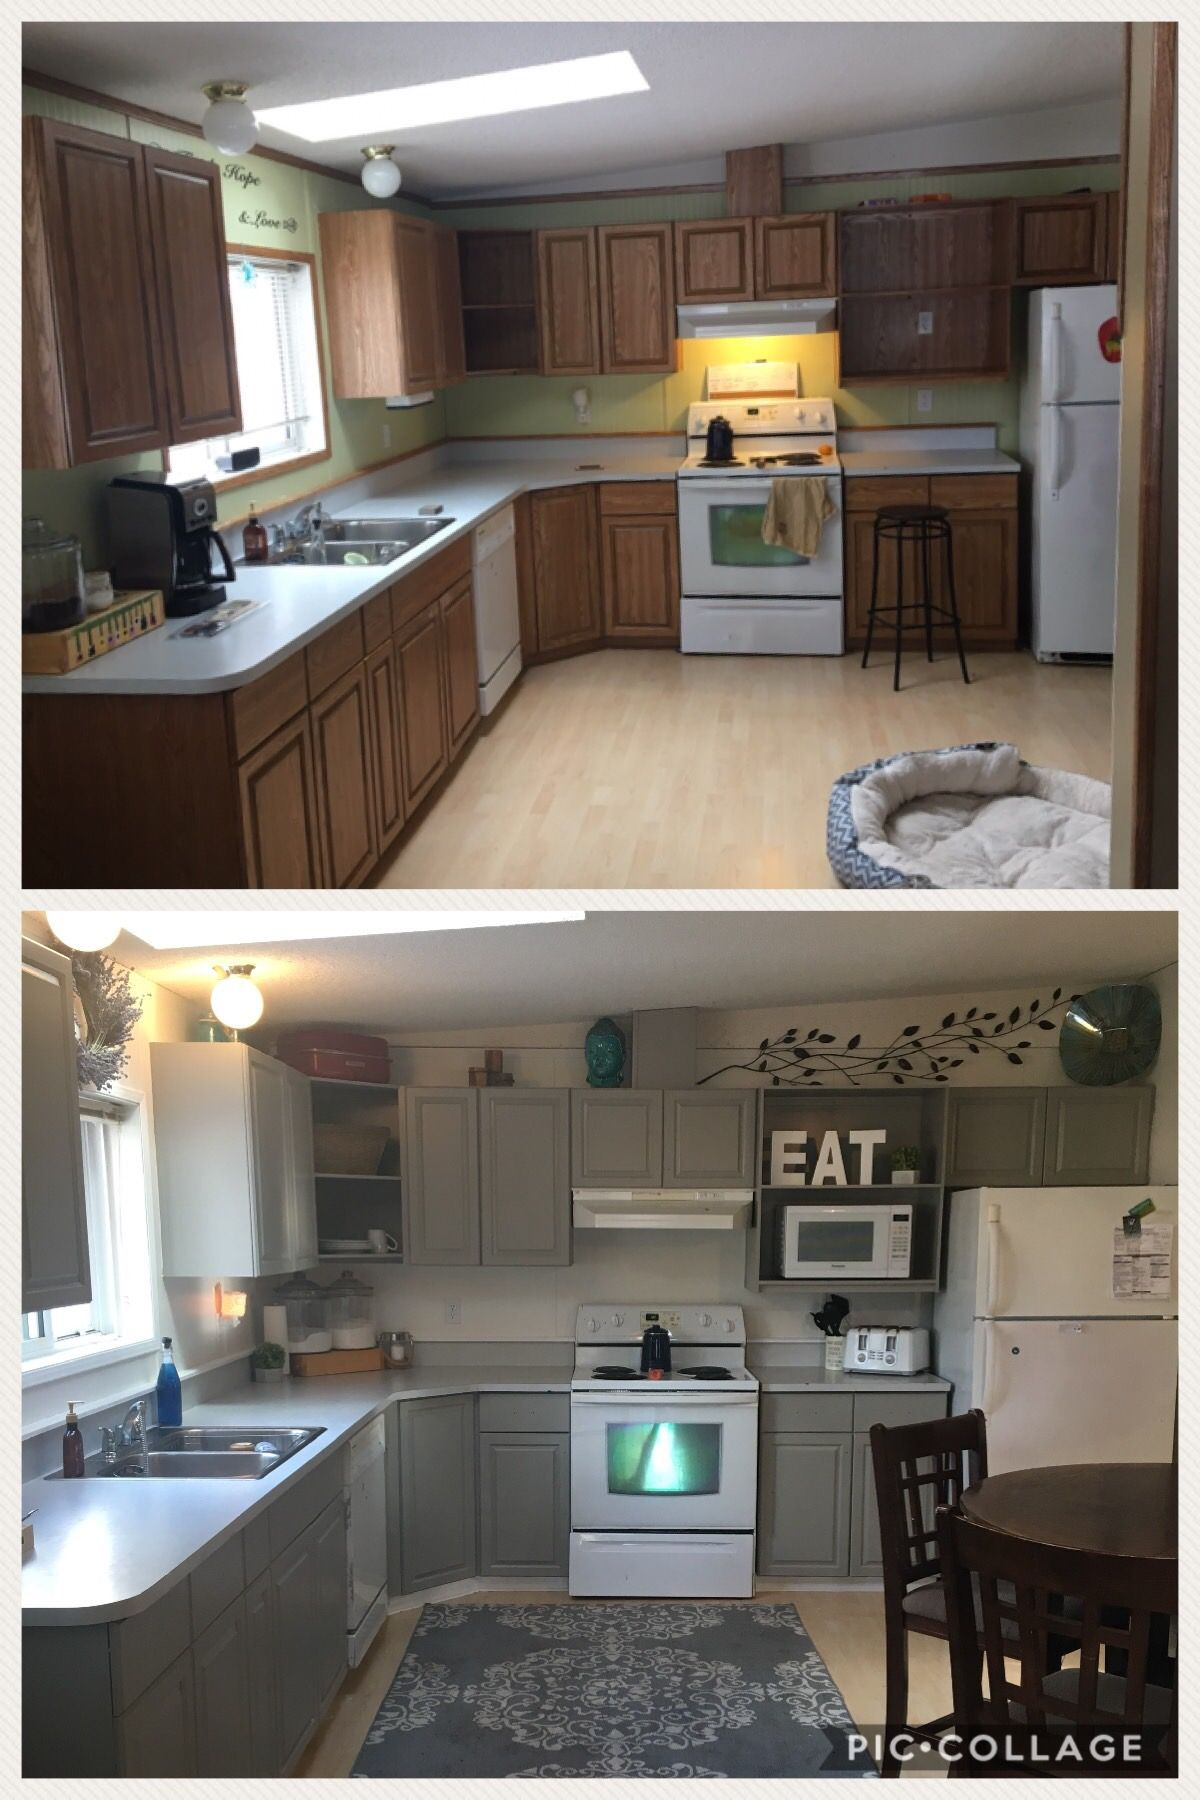 Before And After Painting My Oak Cabinets Prime 1 2 3 Bullseye Paint Is Design Series Dorean Grey Cab Diy Kitchen Remodel Kitchen Remodel Kitchen Renovation